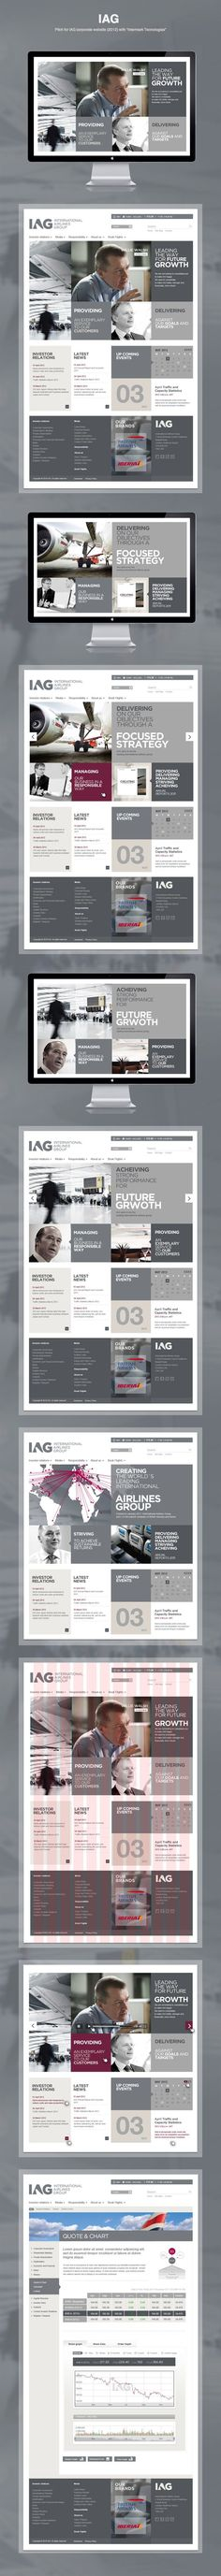 """IAG by Yan Duffield, via Behance *** """"Pitch for IAG corporate website (2012) with """"Intermark Tecnologias"""""""""""